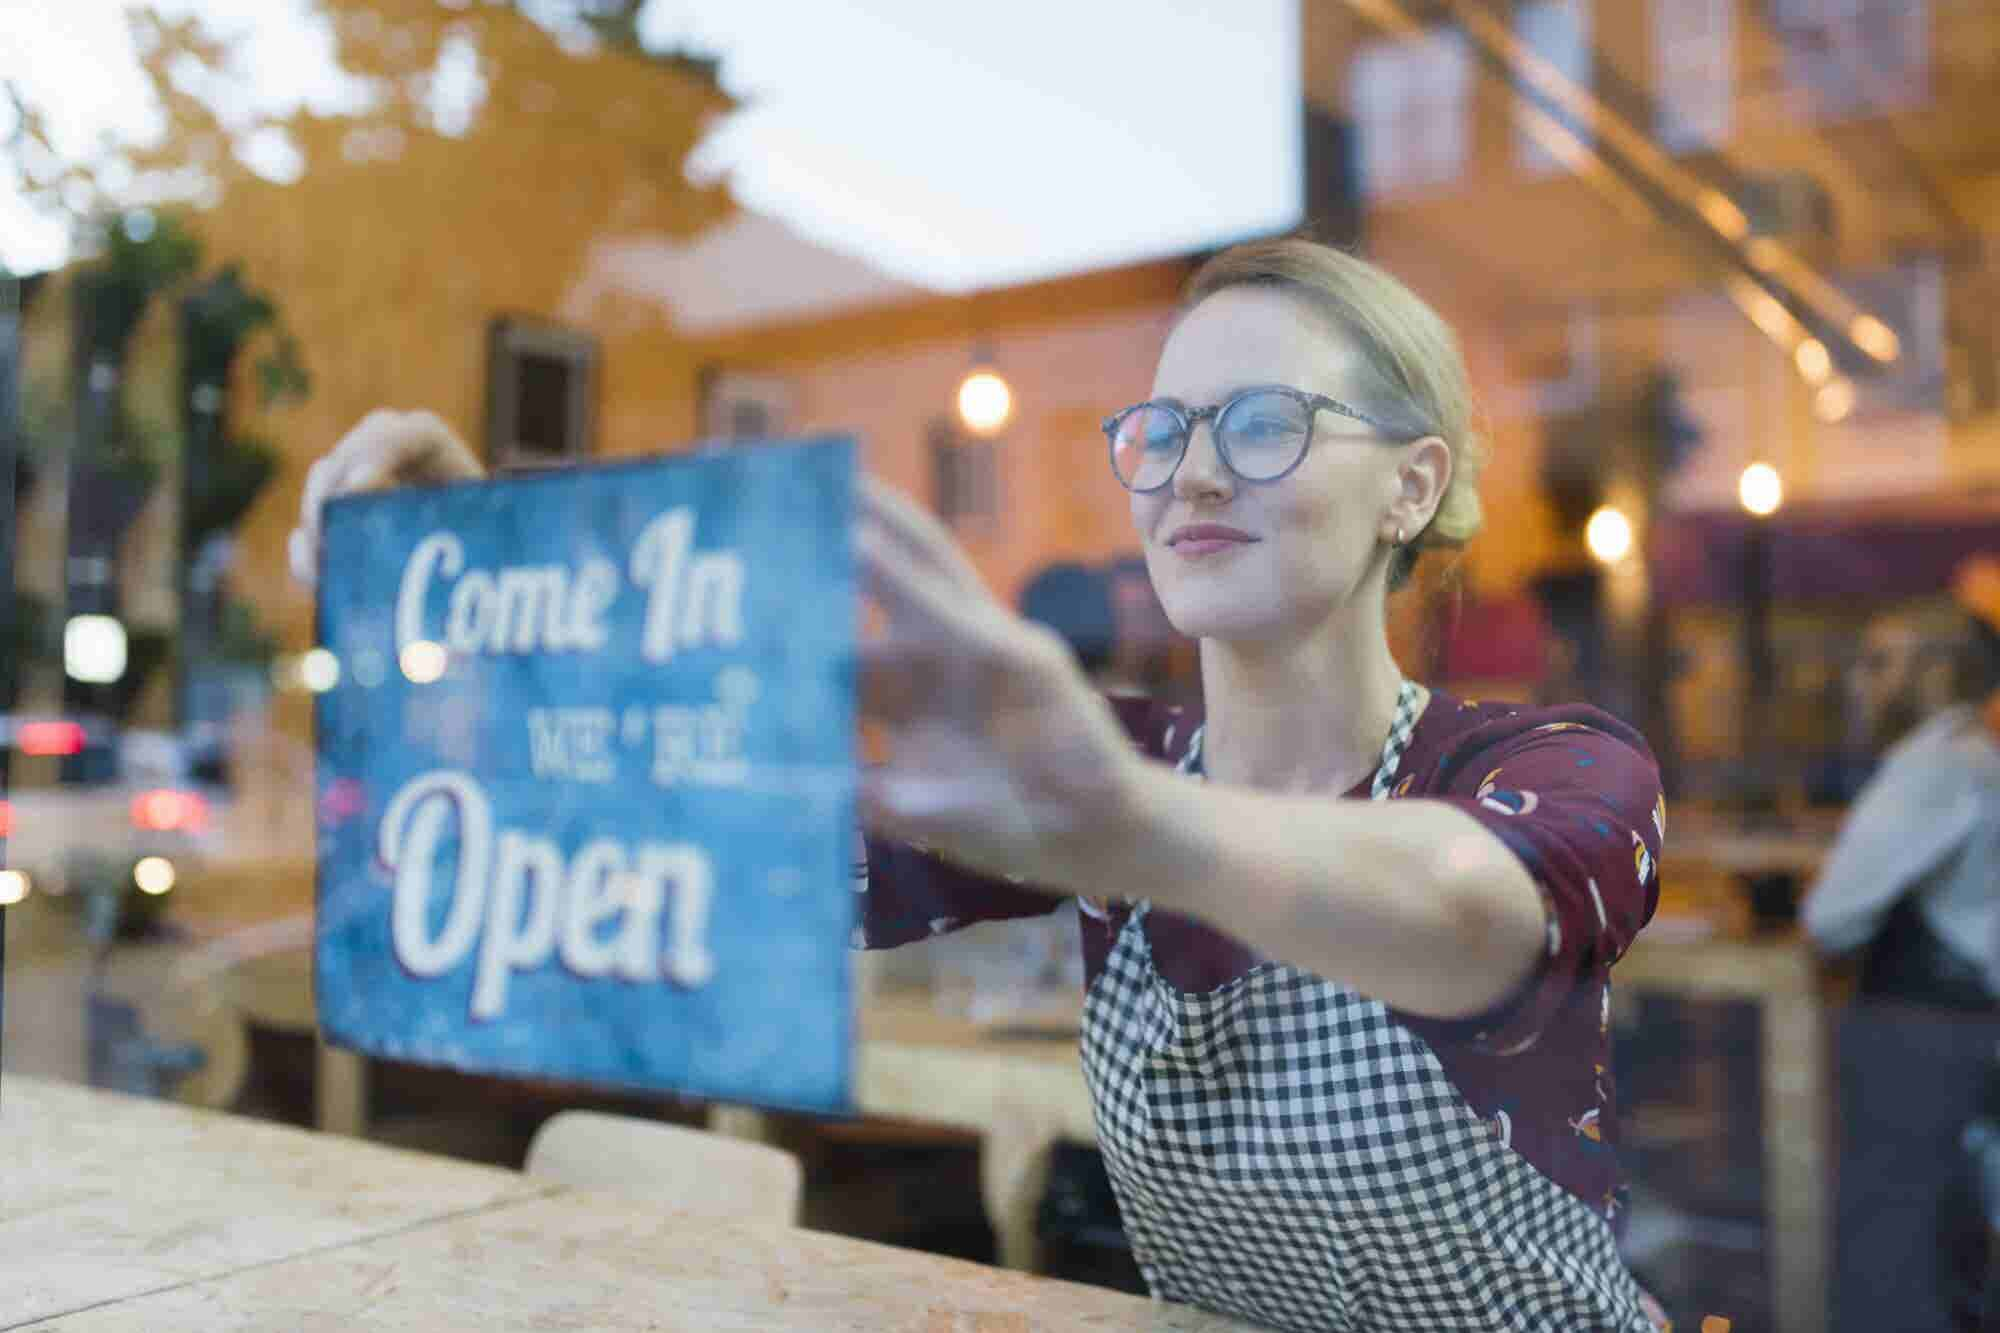 5 Compelling Reasons for Starting a Business Even Though Most Businesses Fail